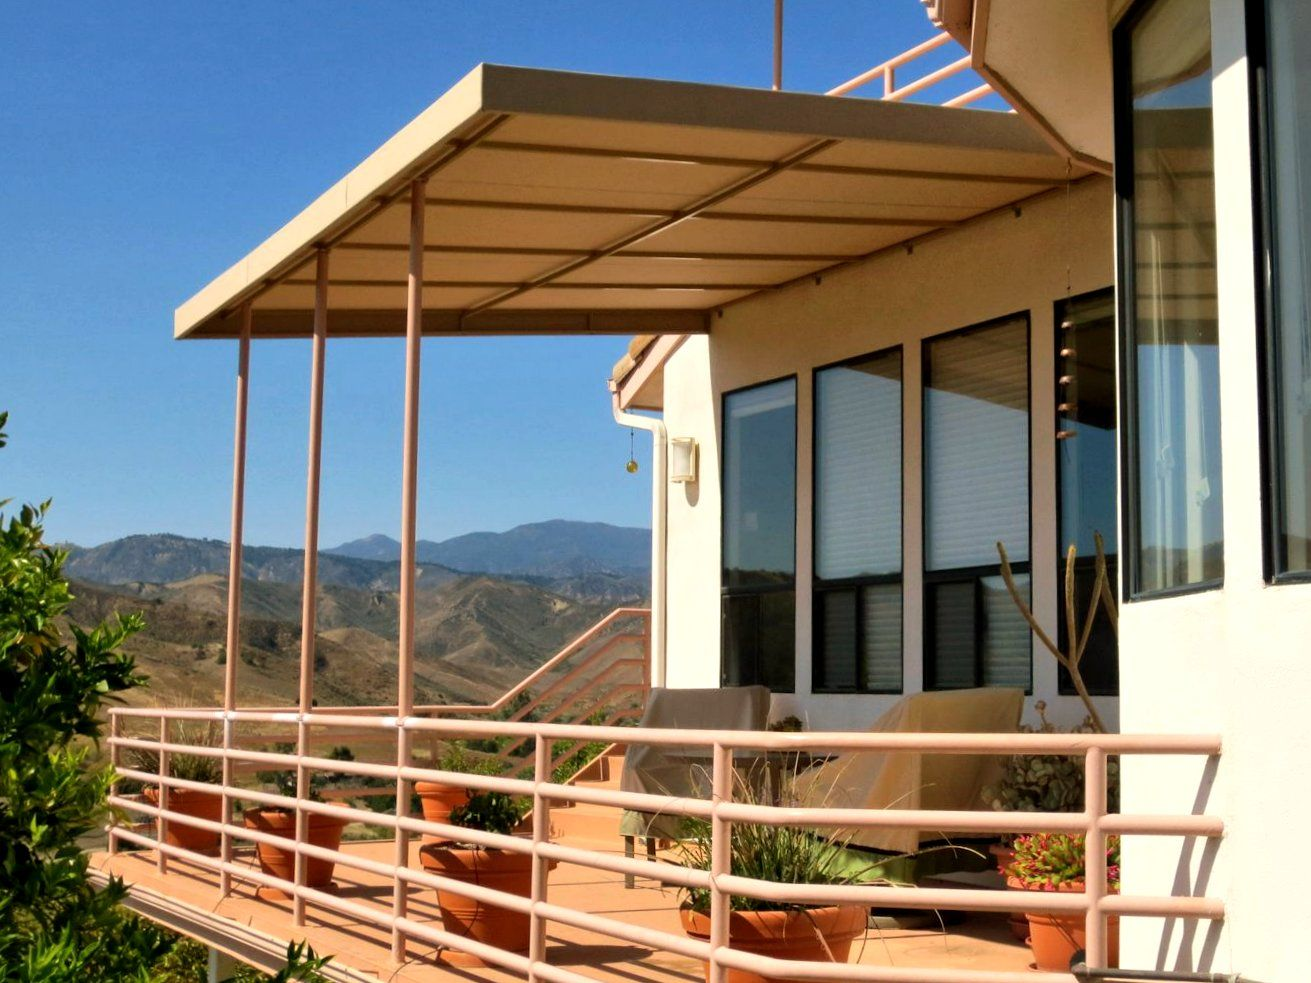 Residential Awnings Patio Covers By Superior Awning Residential Awnings Patio Deck Furniture Canvas Patio Covers